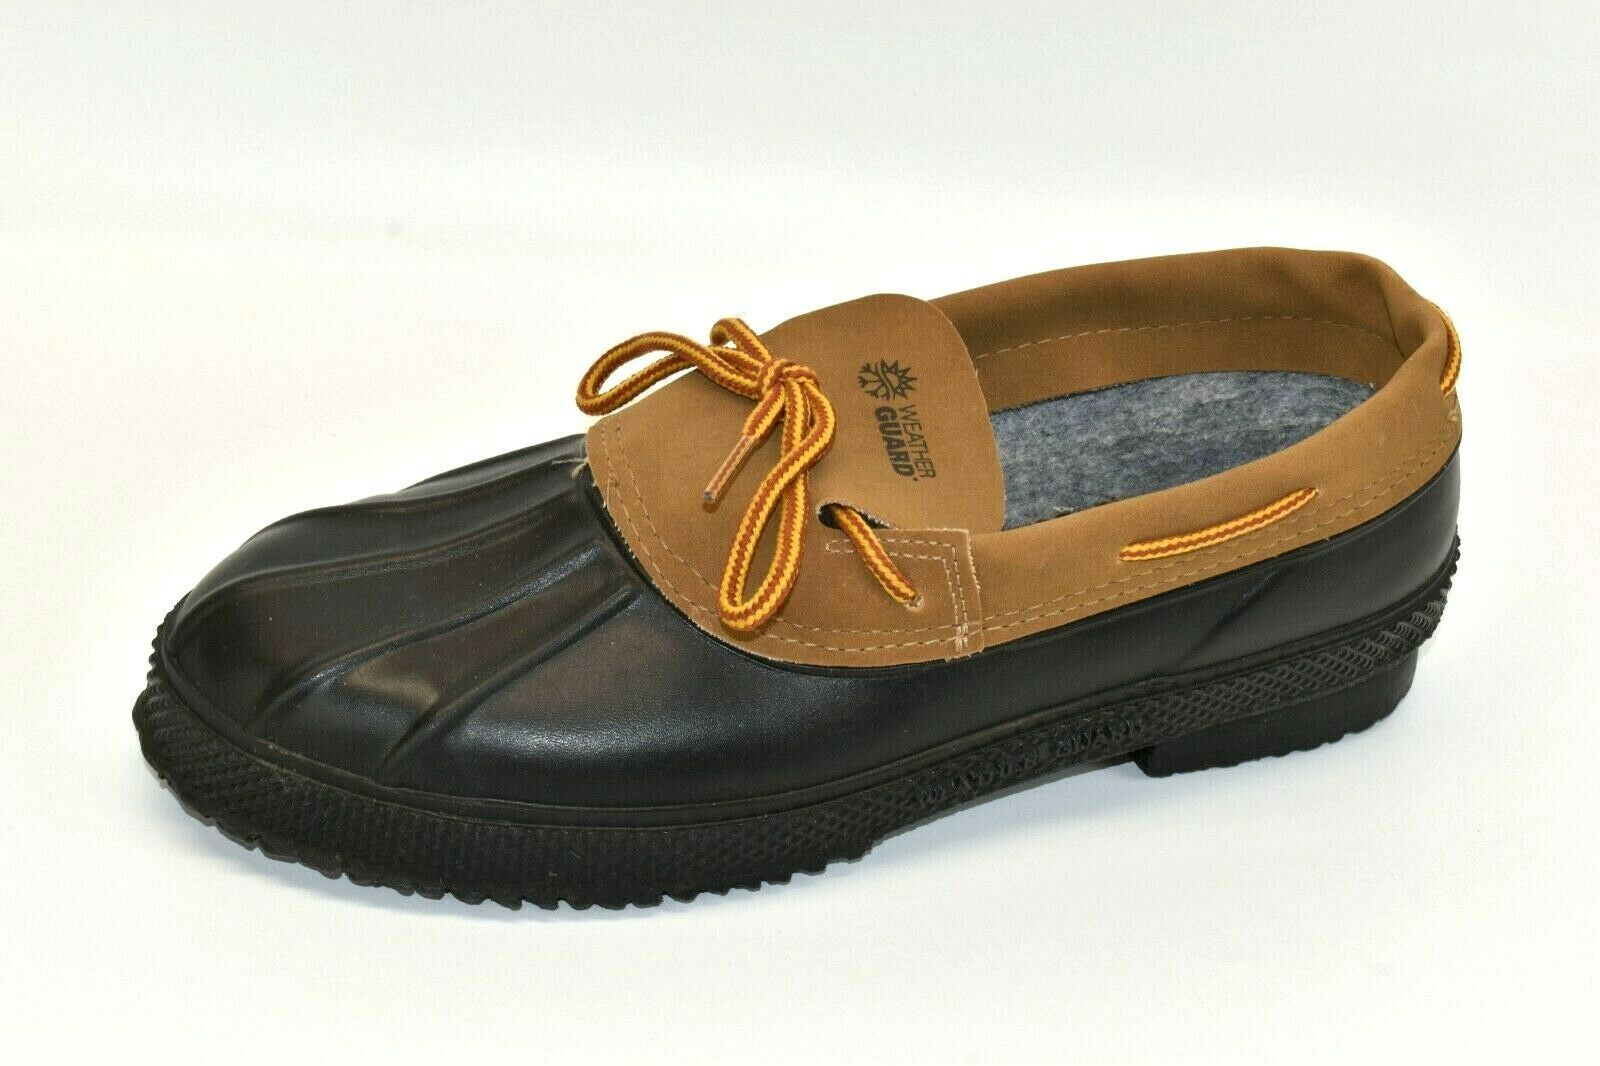 Weather Guard Men's Leather Shoes Sz 9 Round Toe Lace Casual Classic Black Brown